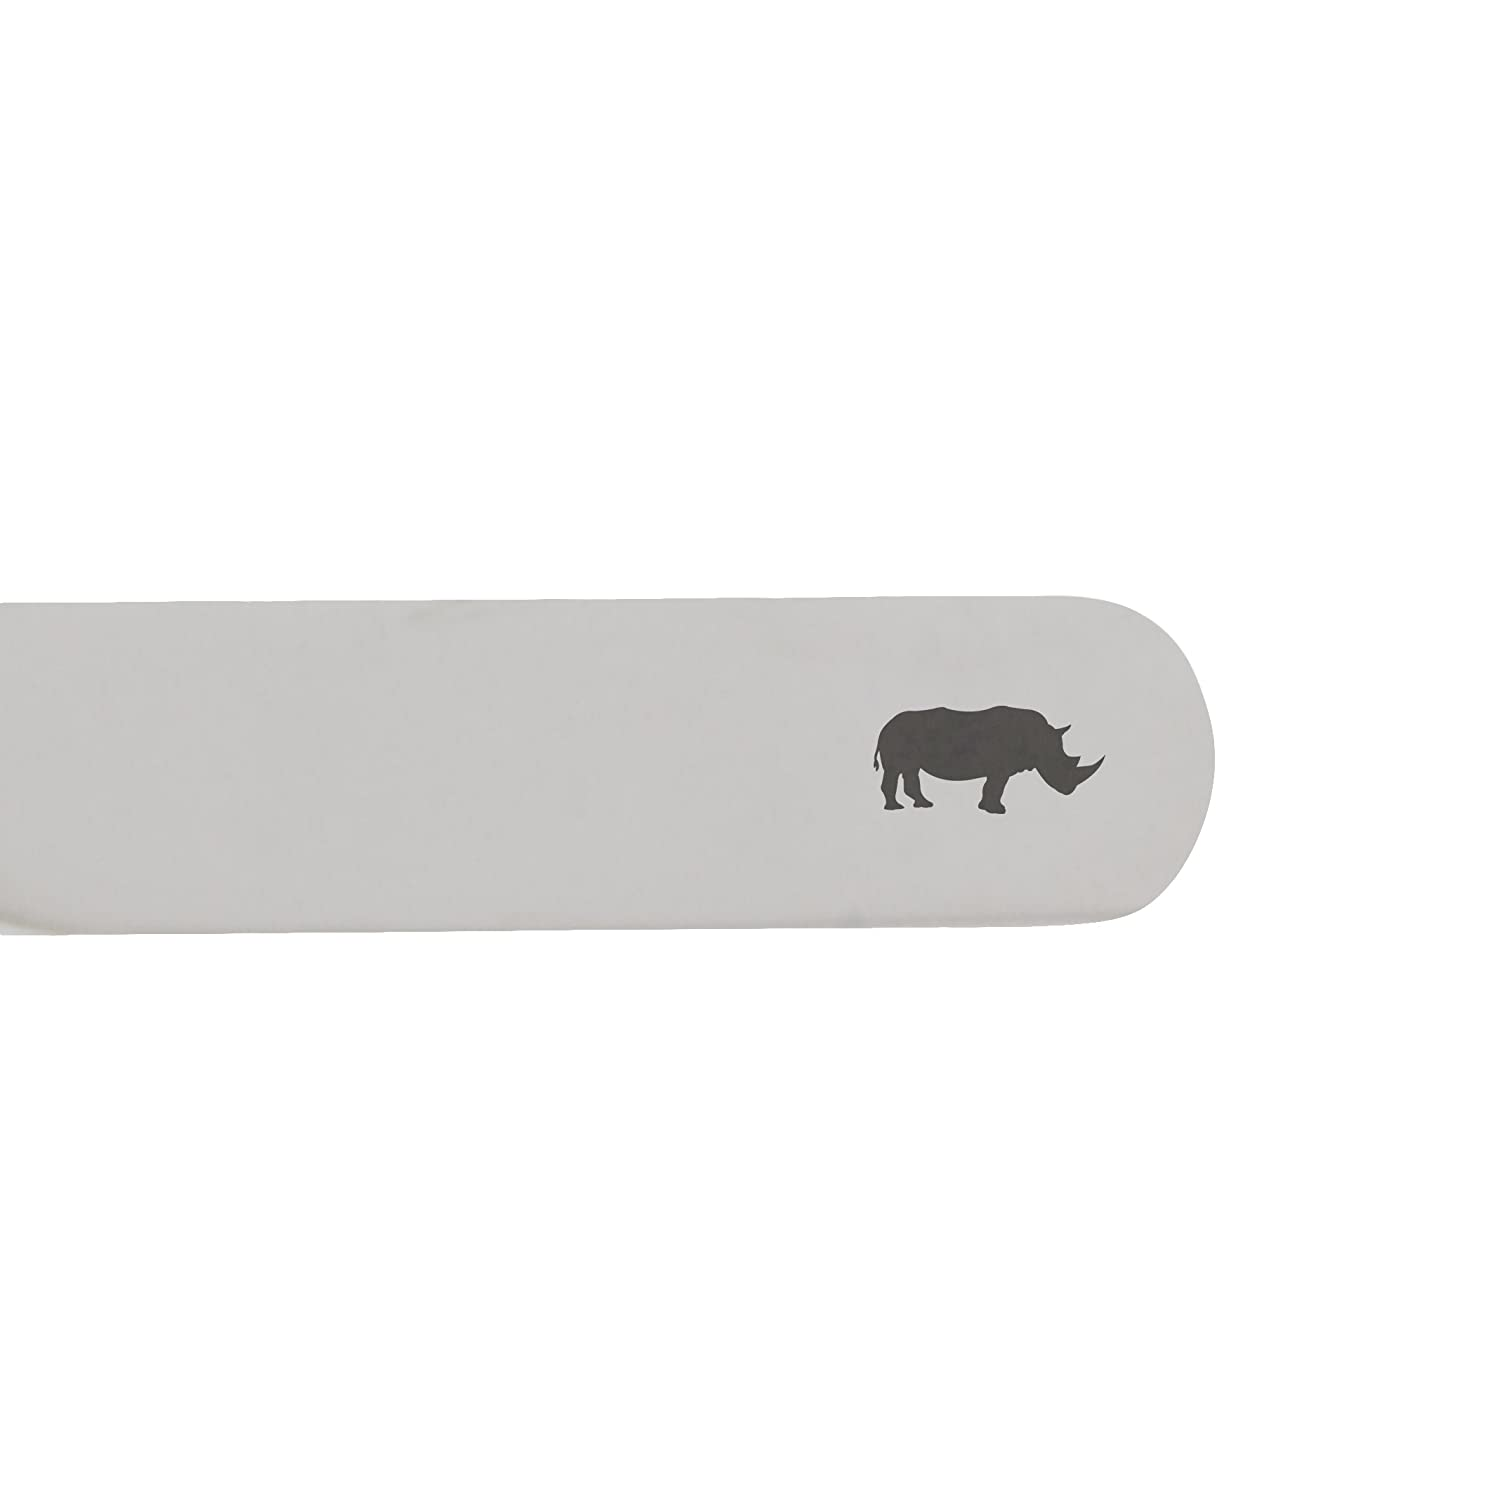 MODERN GOODS SHOP Stainless Steel Collar Stays With Laser Engraved Rhino Design 2.5 Inch Metal Collar Stiffeners Made In USA